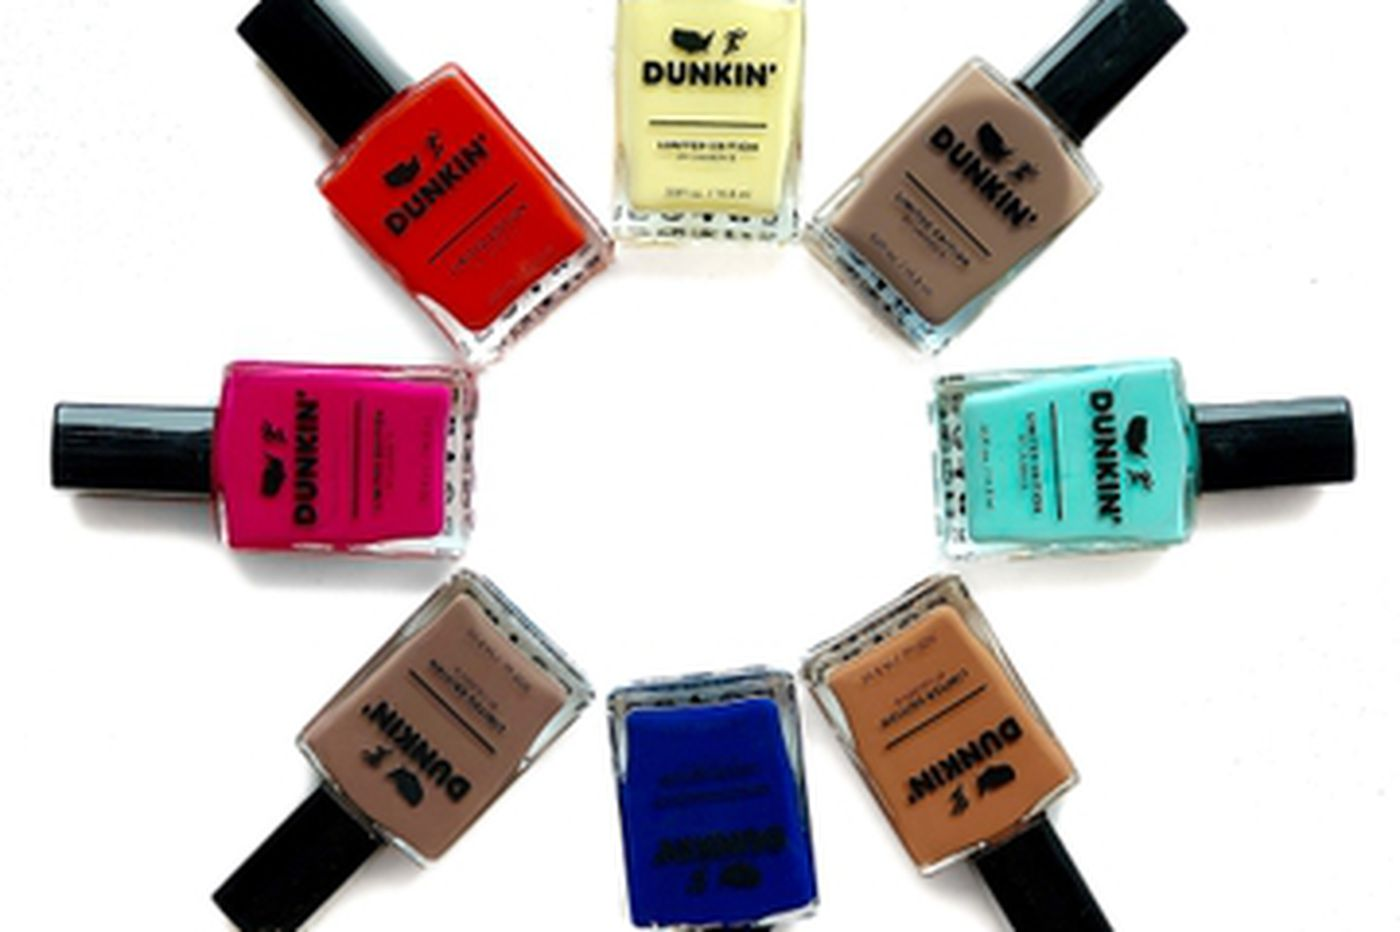 Frost yourself with Dunkin' Donuts nail polish, now available at Philly salons